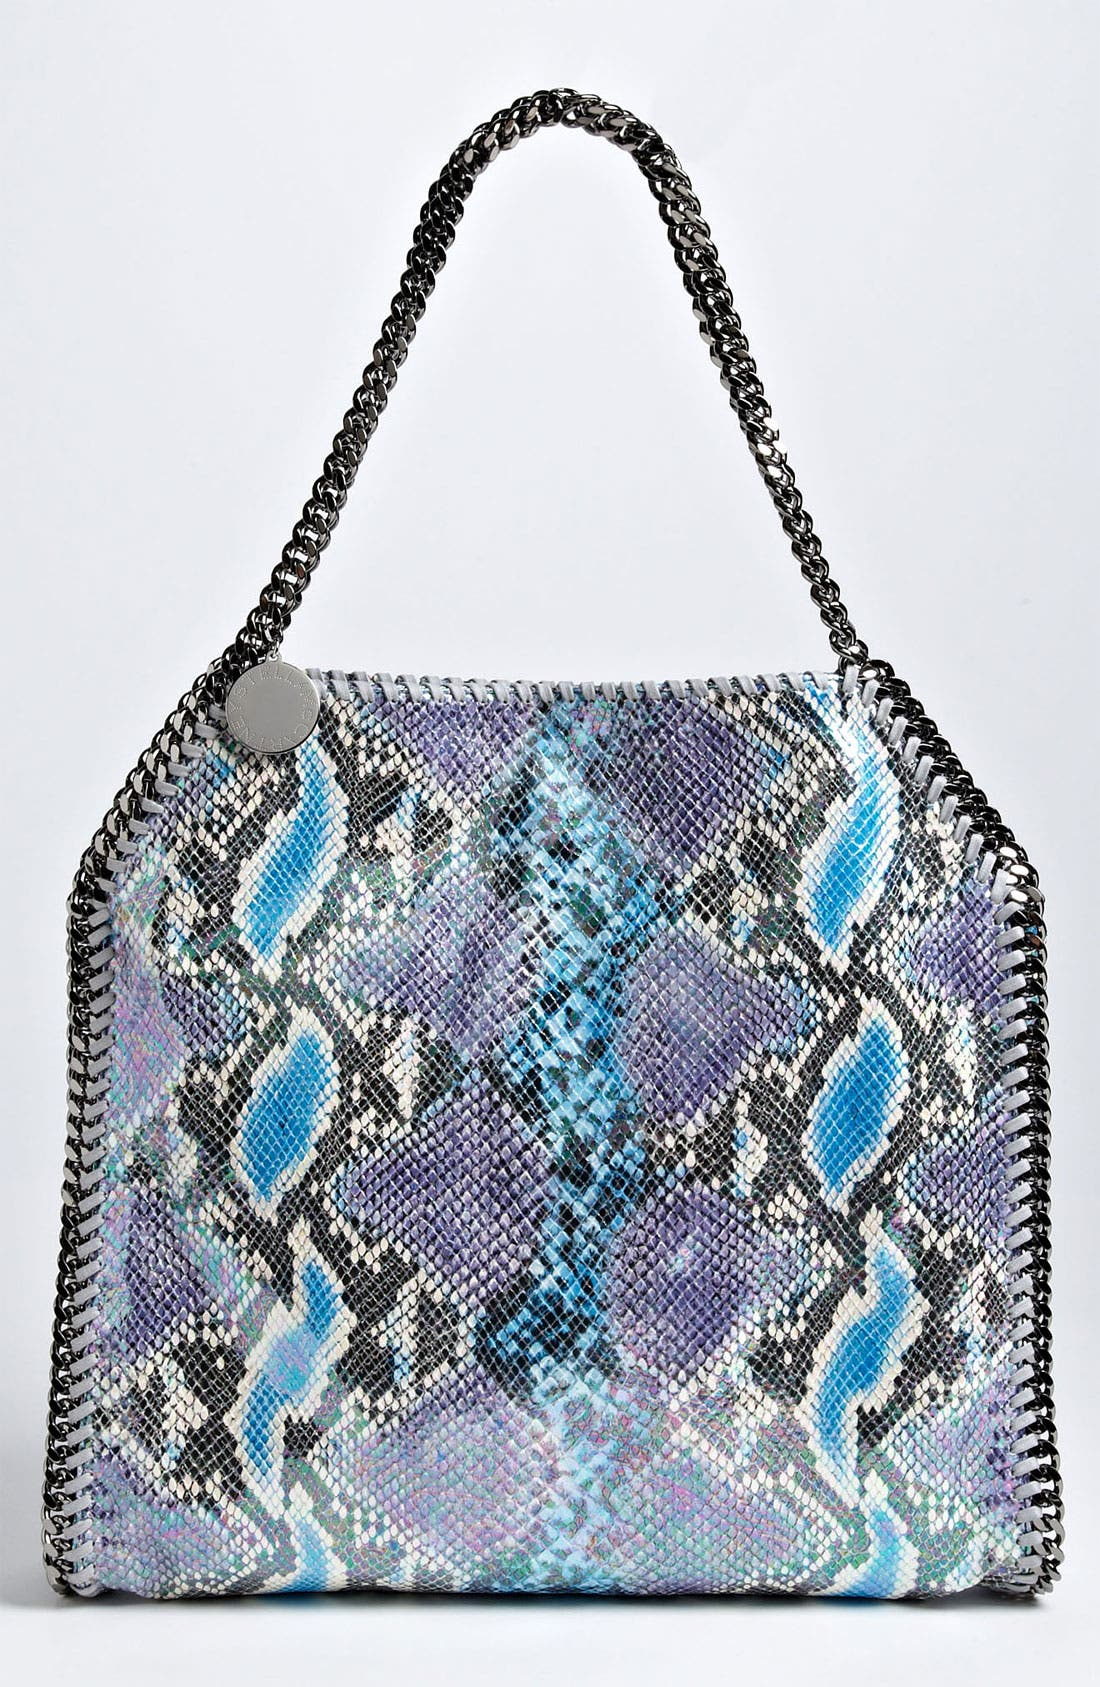 Main Image - Stella McCartney 'Falabella - Small' Oleographic Faux Python Tote